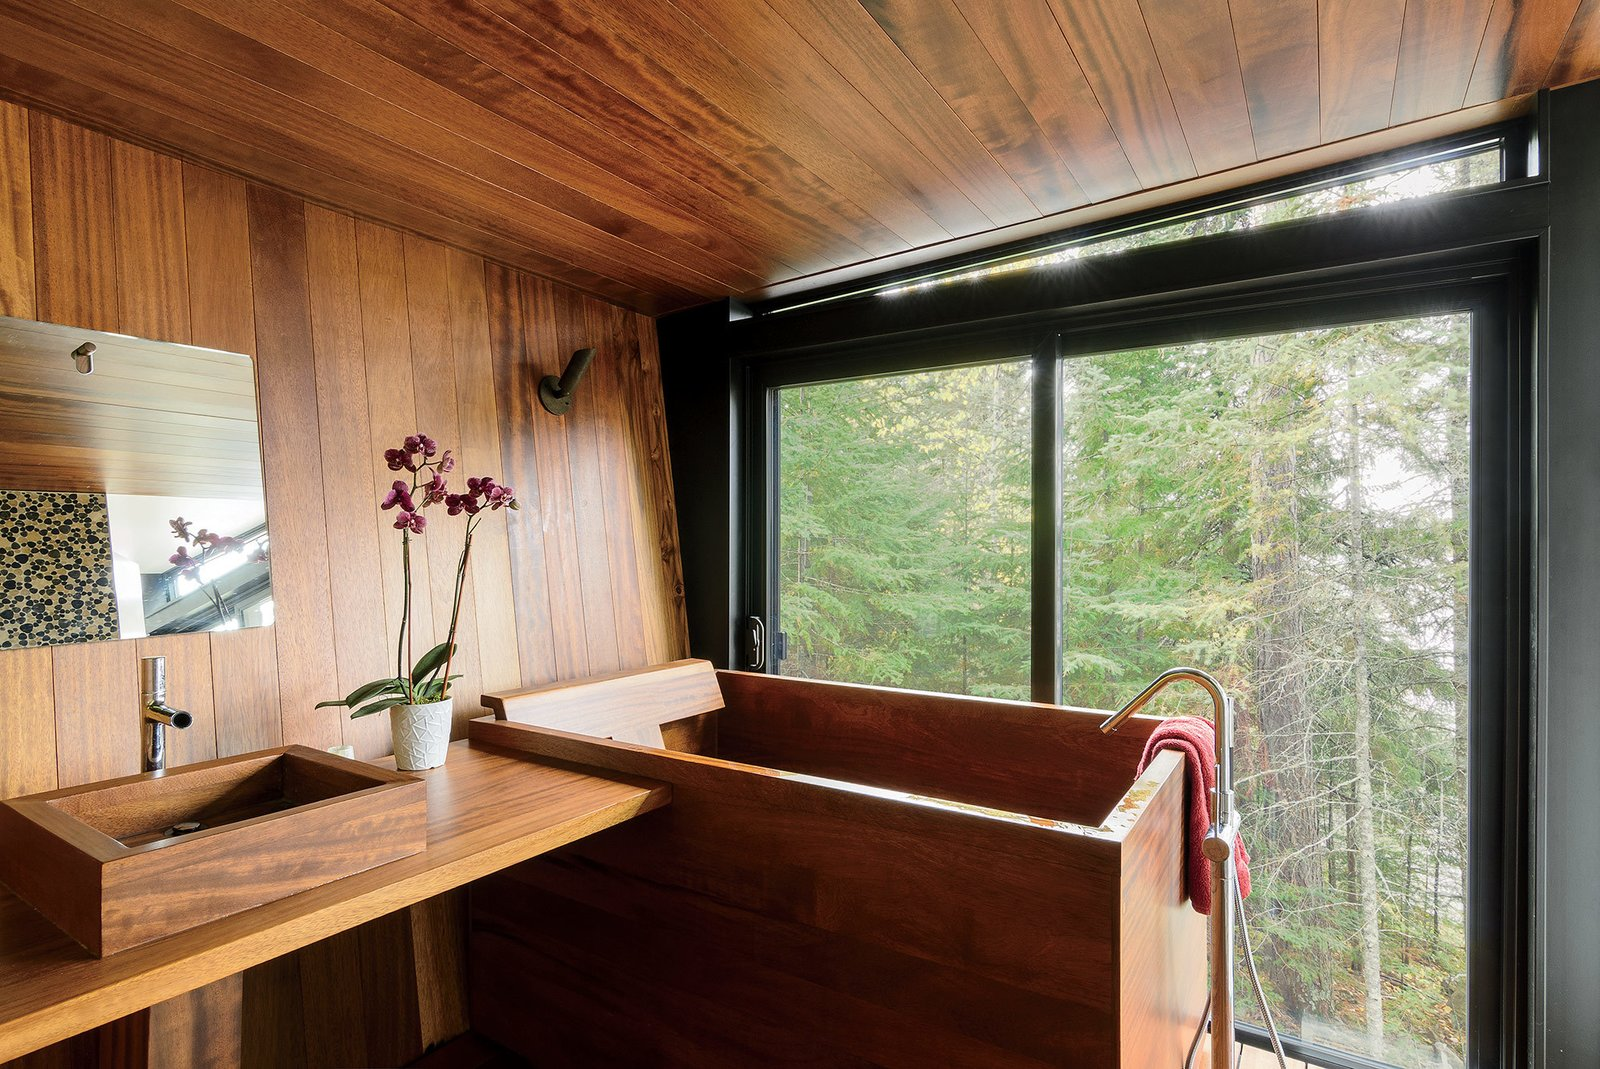 Bath Room, Vessel Sink, Soaking Tub, Wood Counter, and Medium Hardwood Floor The Japanese-style bathroom, which is clad in teak, features a matching tub and sink by Bath in Wood.  Bathroom from Prefab Made This Super Remote House in the Ontario Wilderness Possible